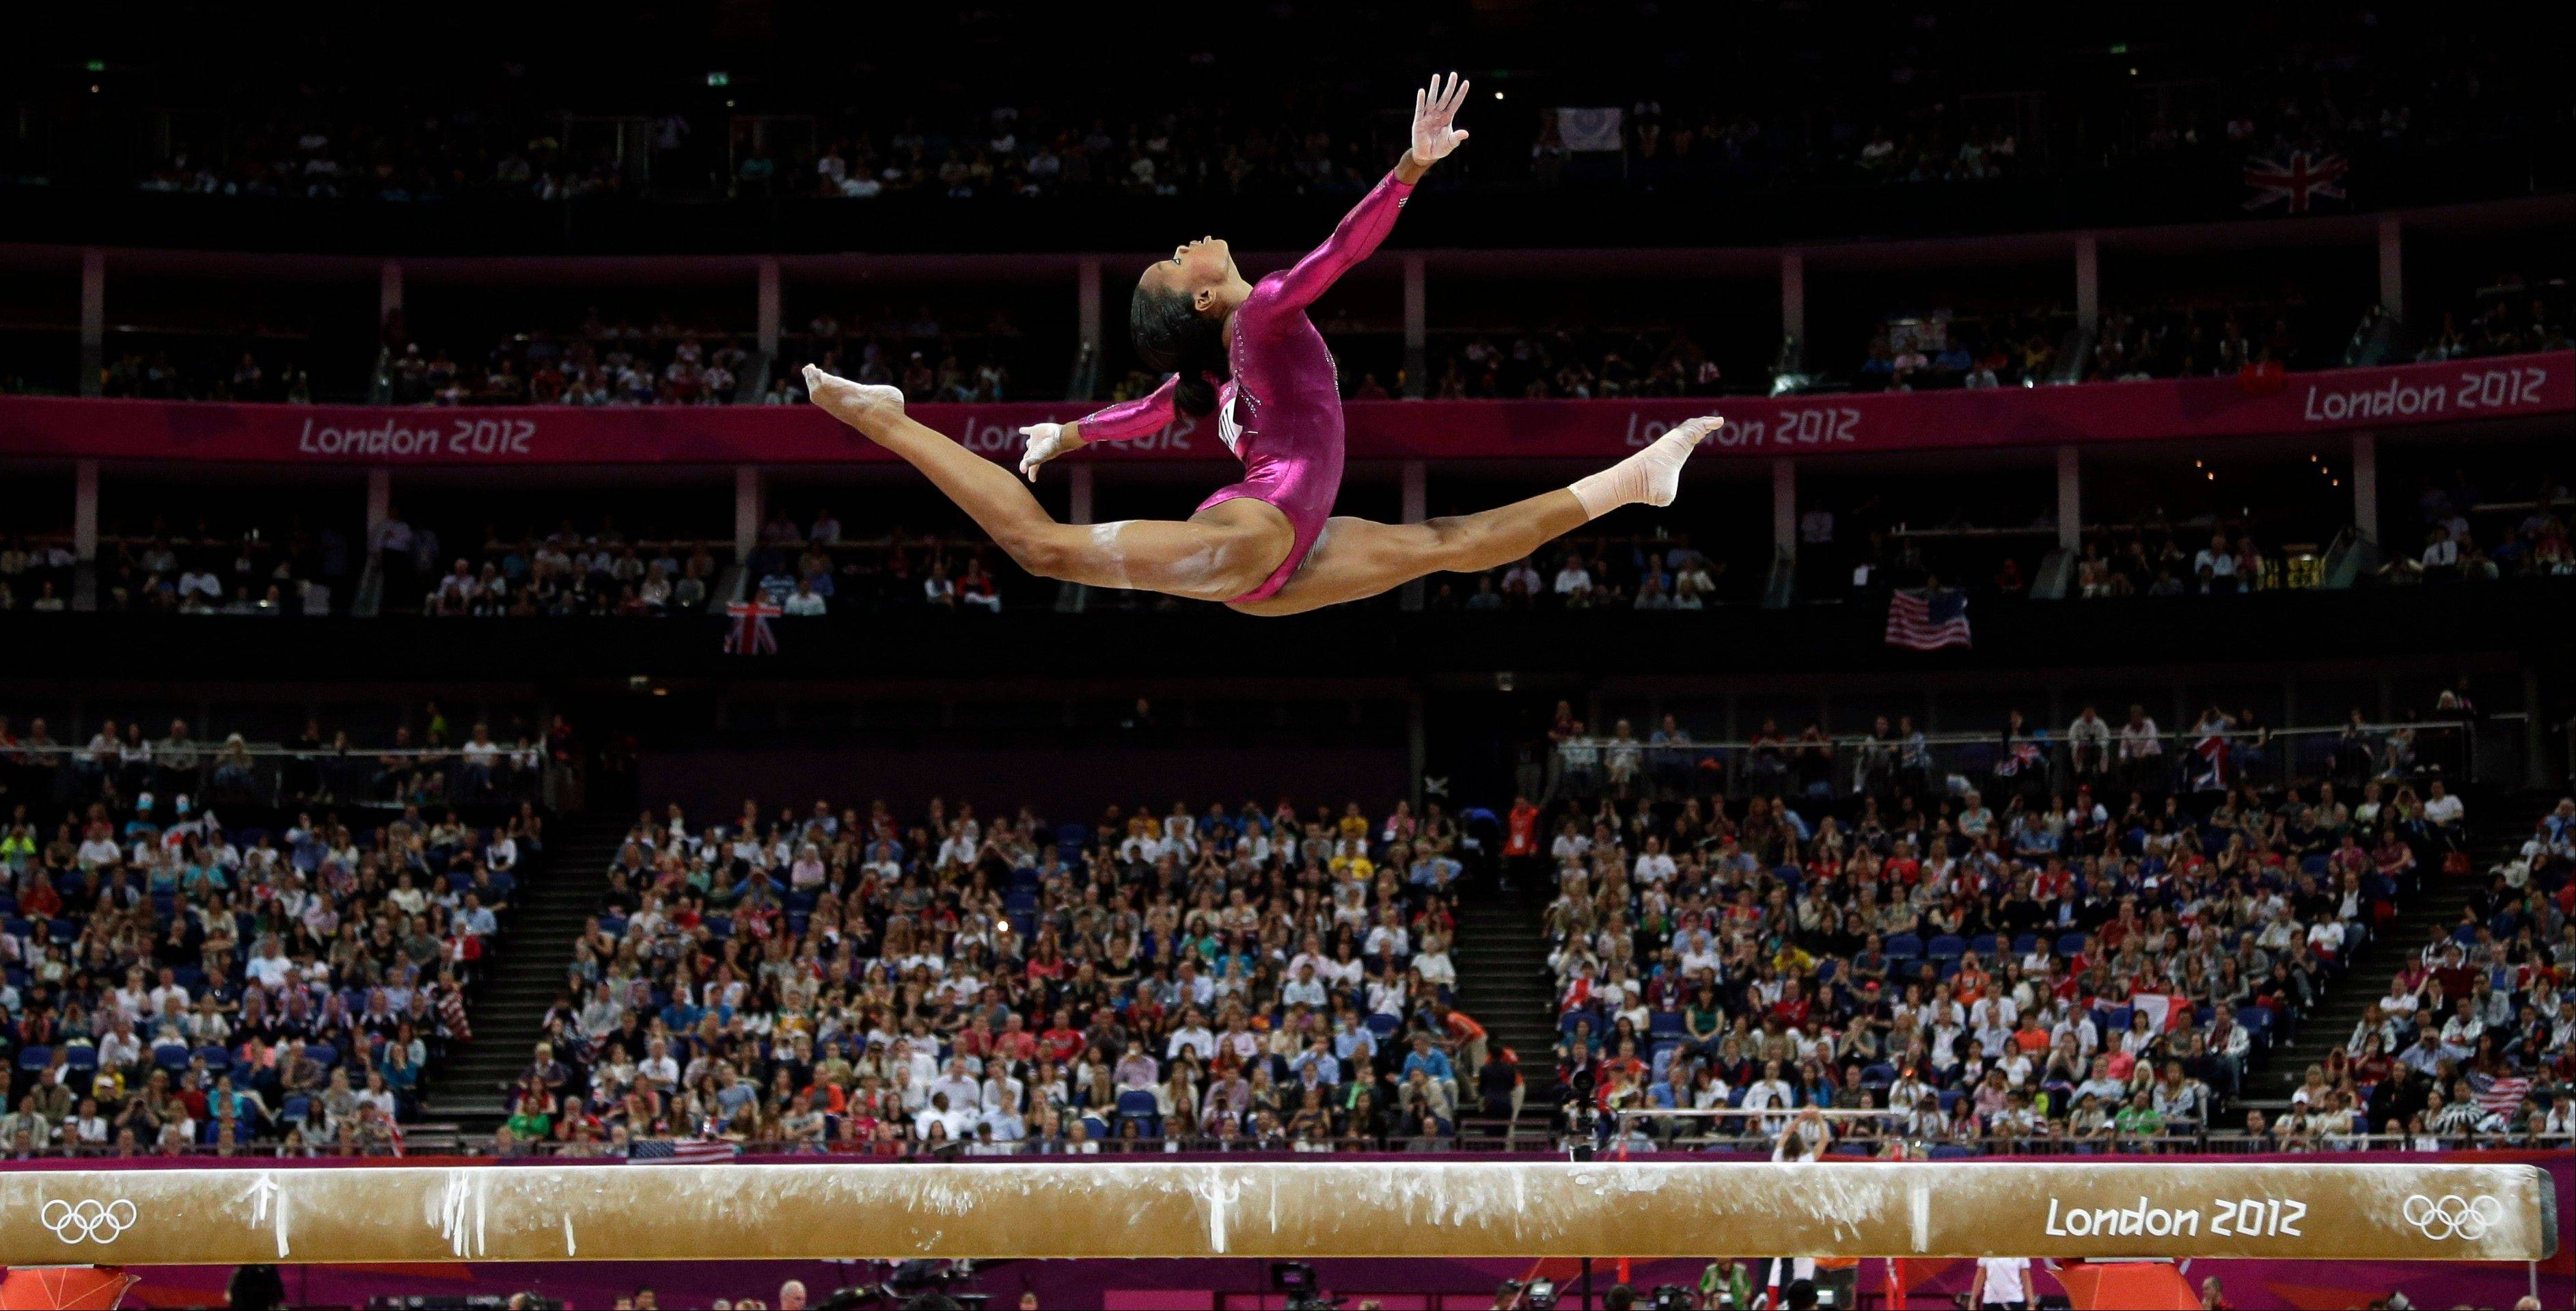 In this Aug. 2 photo, U.S. gymnast Gabrielle Douglas performs on the balance beam during the artistic gymnastics women's individual all-around competition at the 2012 Summer Olympics in London. Douglas will compete in the individual medal on the balance beam Tuesday night.